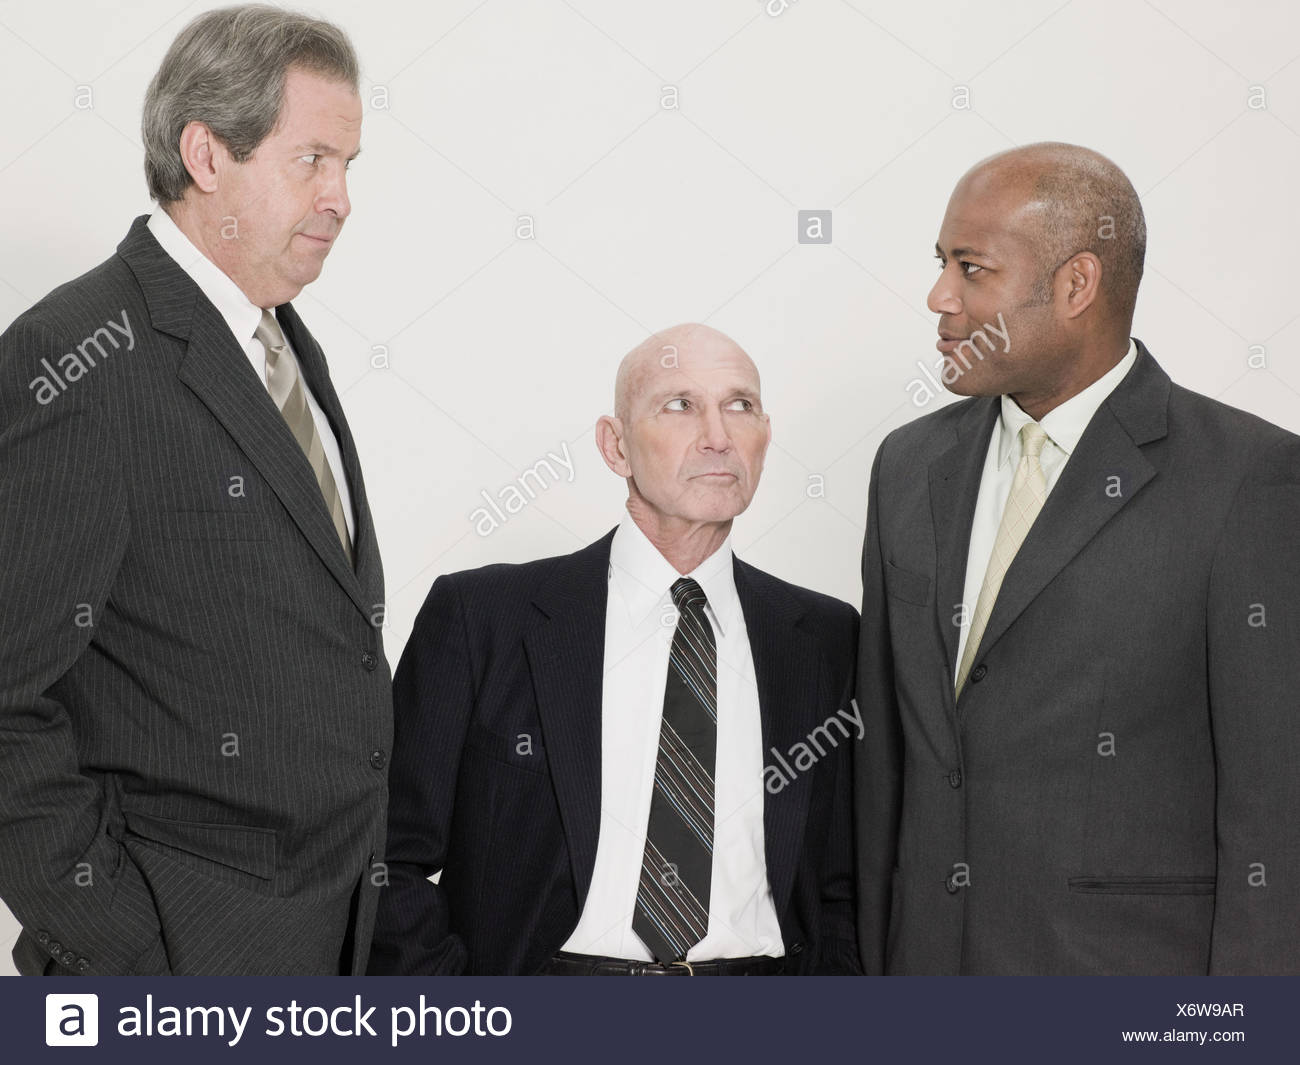 Tall and short businessmen - Stock Image